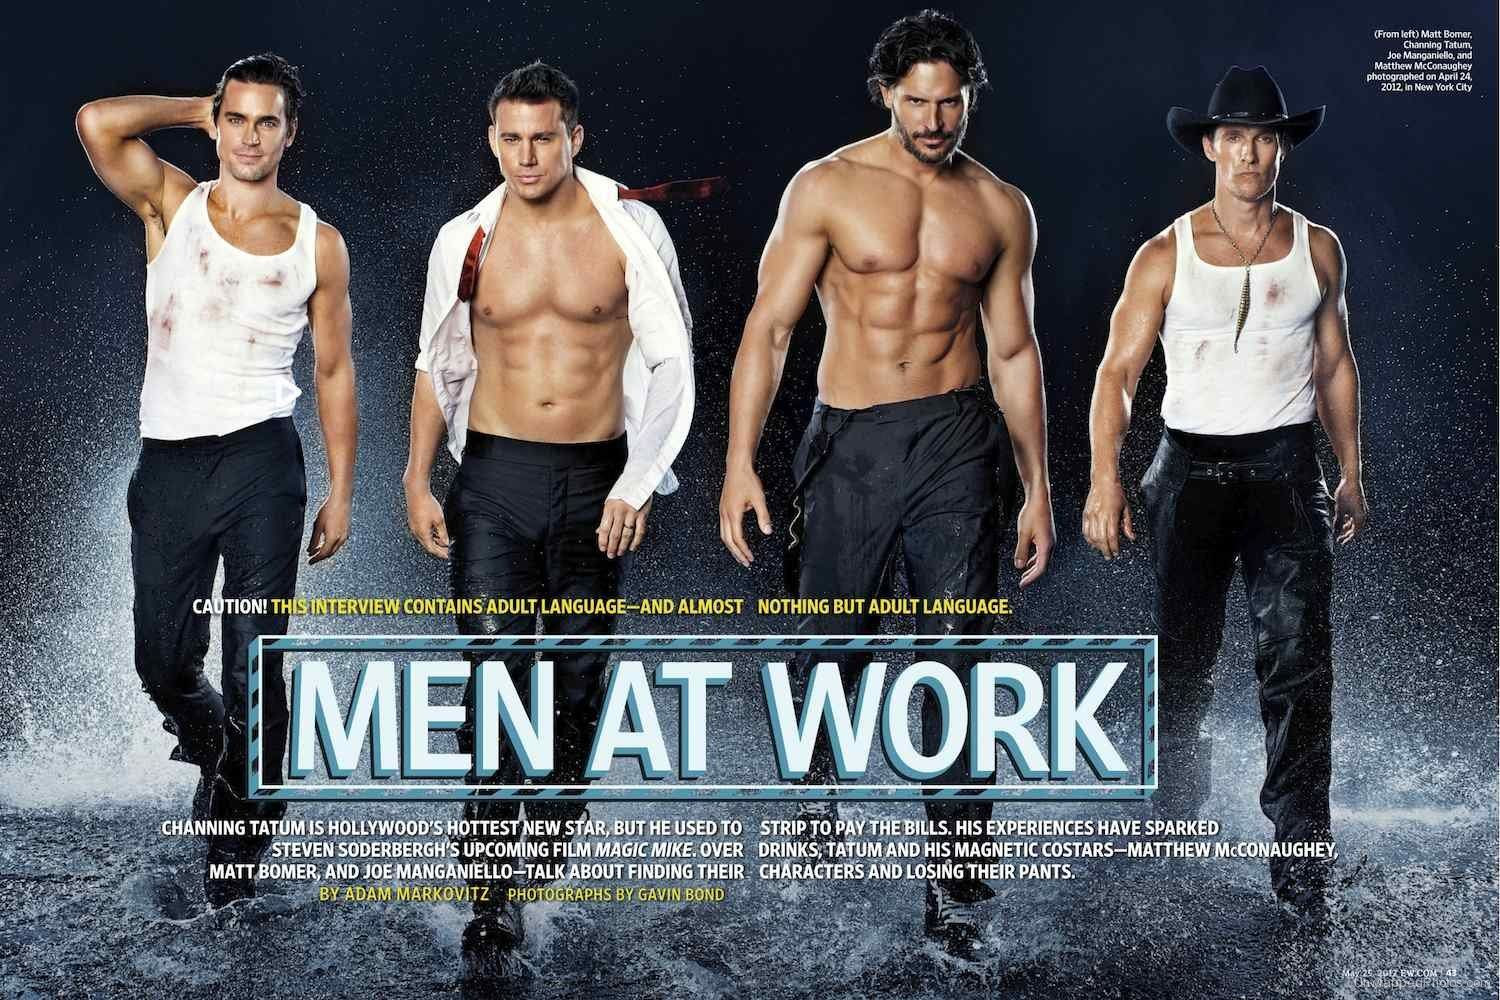 Entertainment Weekly (May 25, 2012), Channing Tatum, Matthew McConaughey, Matt Bomer, Joe Manganiello